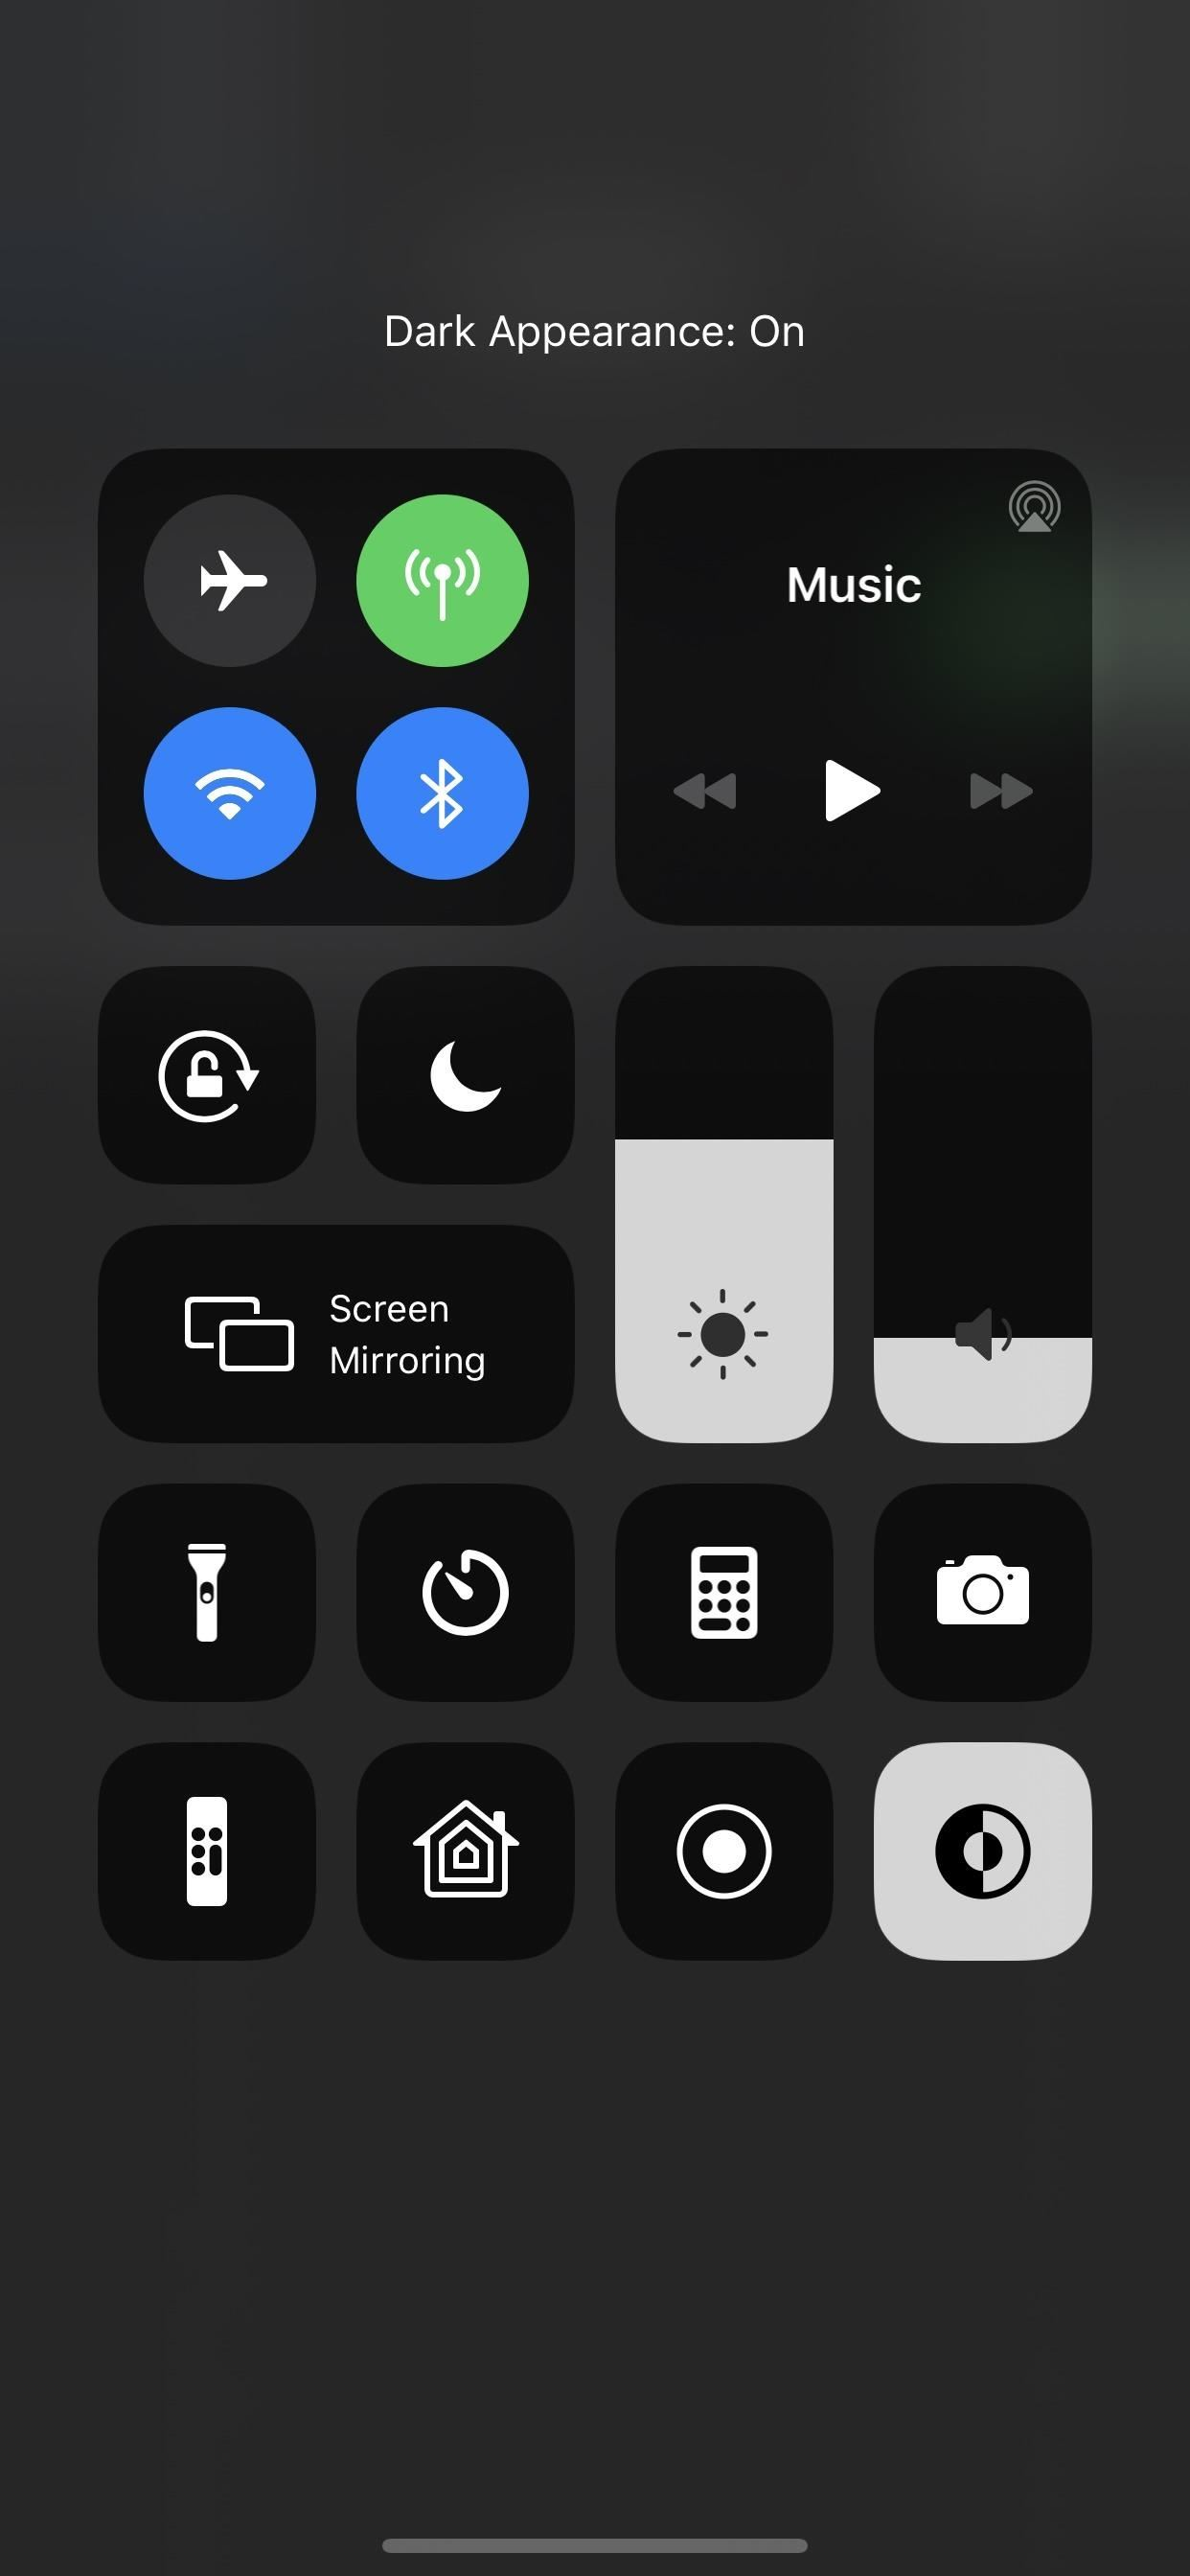 Apple Releases iOS 13 Public Beta 5 for iPhone with New Dark Mode